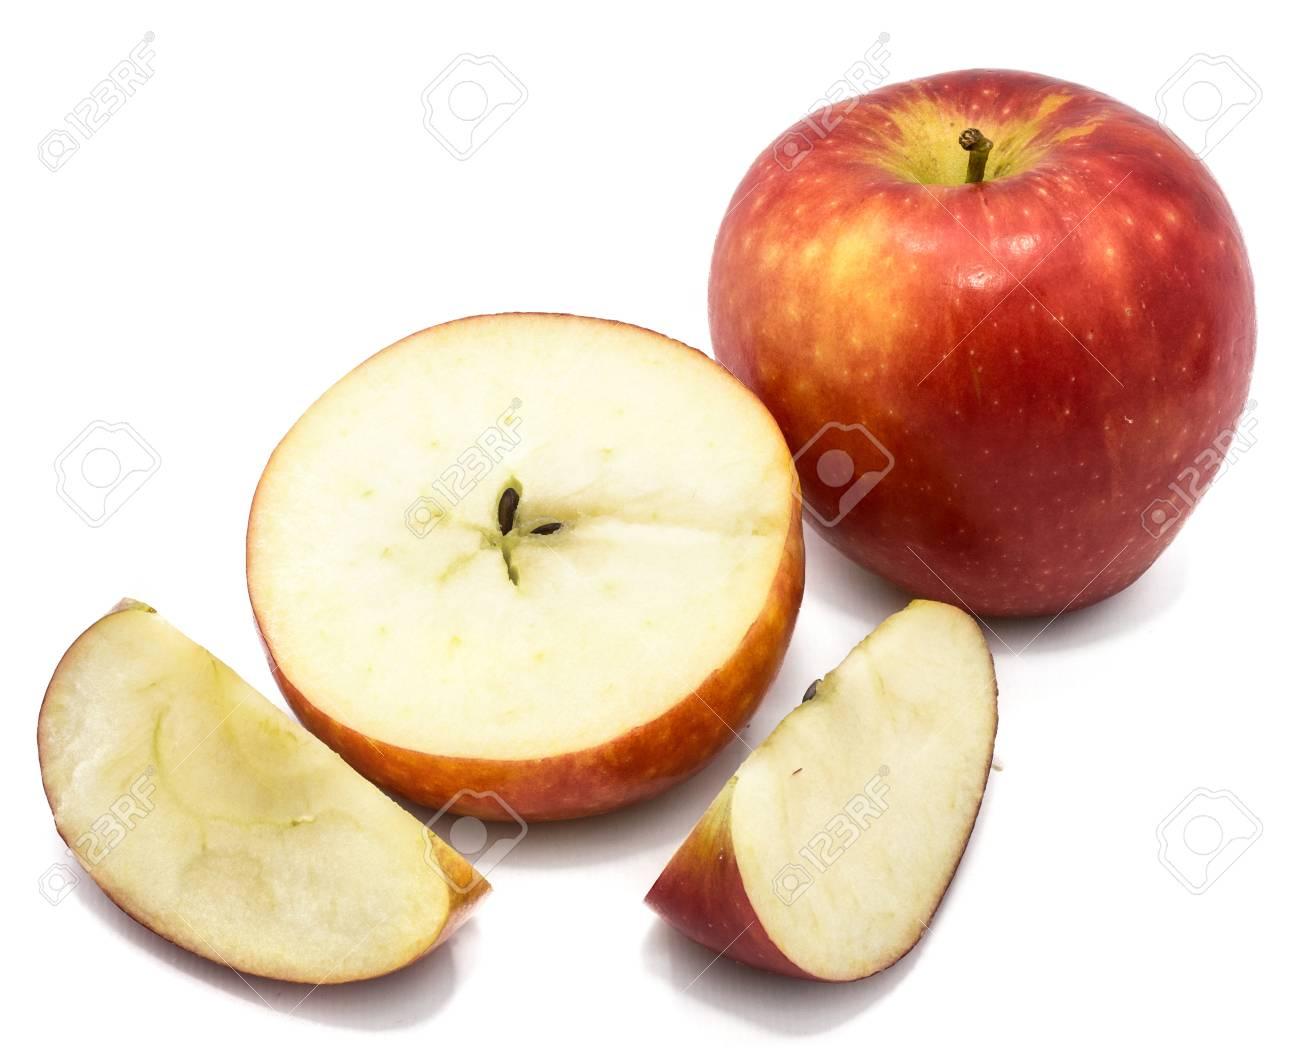 Sliced Apples Kanzi One Whole Cross Section Half Two Slices